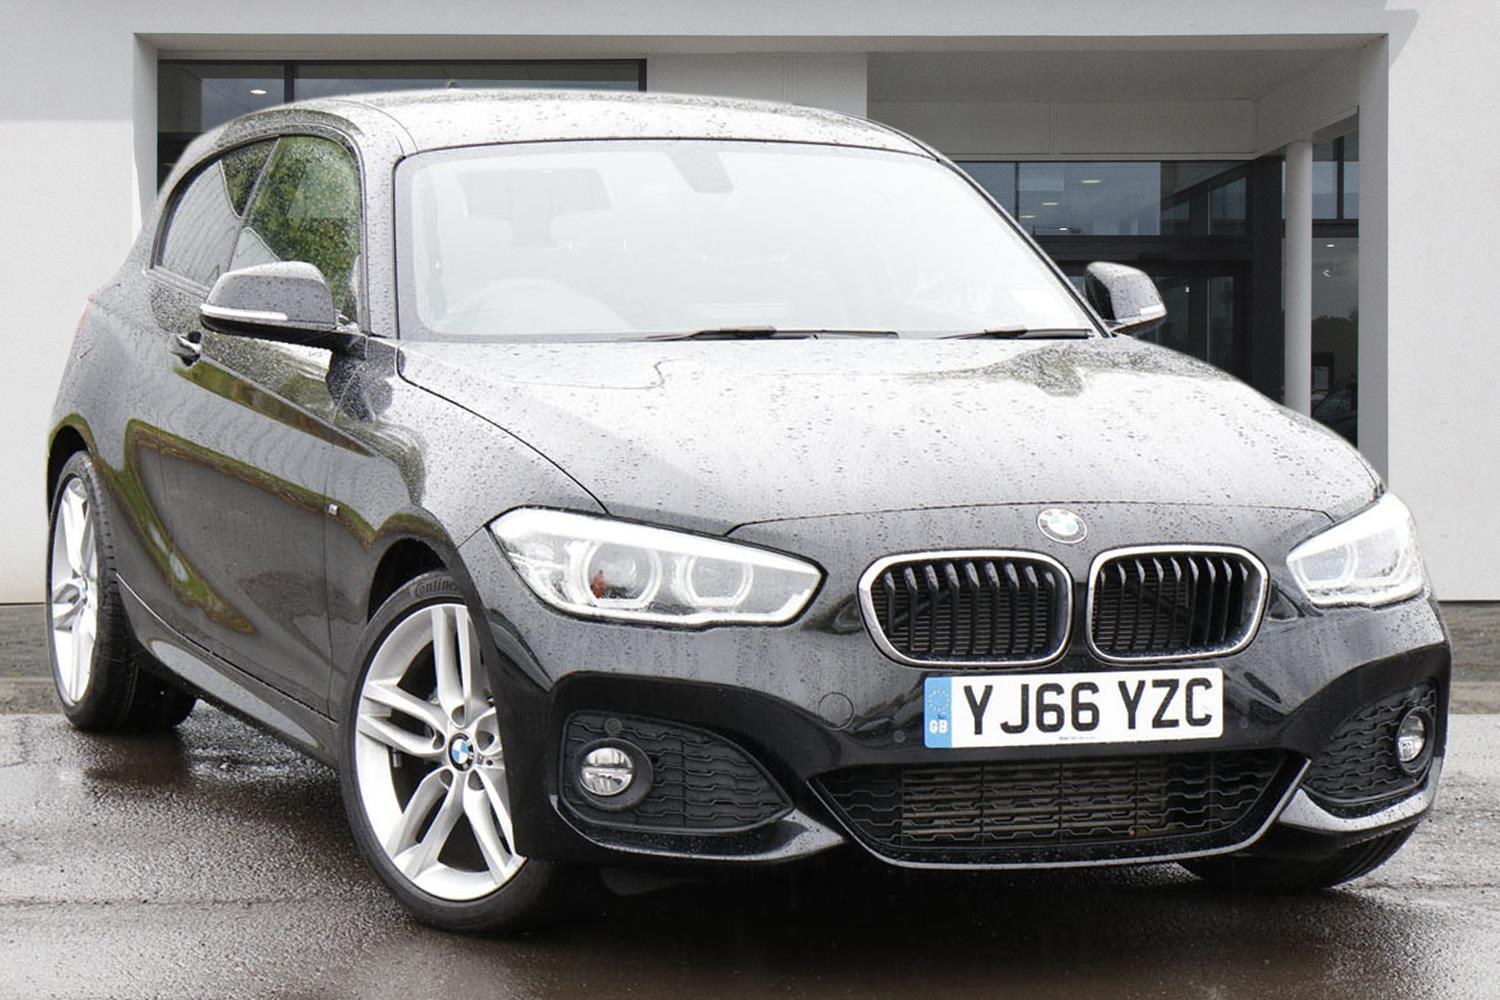 BMW 1 Series 3-door Sports Hatch YJ66YZC - Image 8